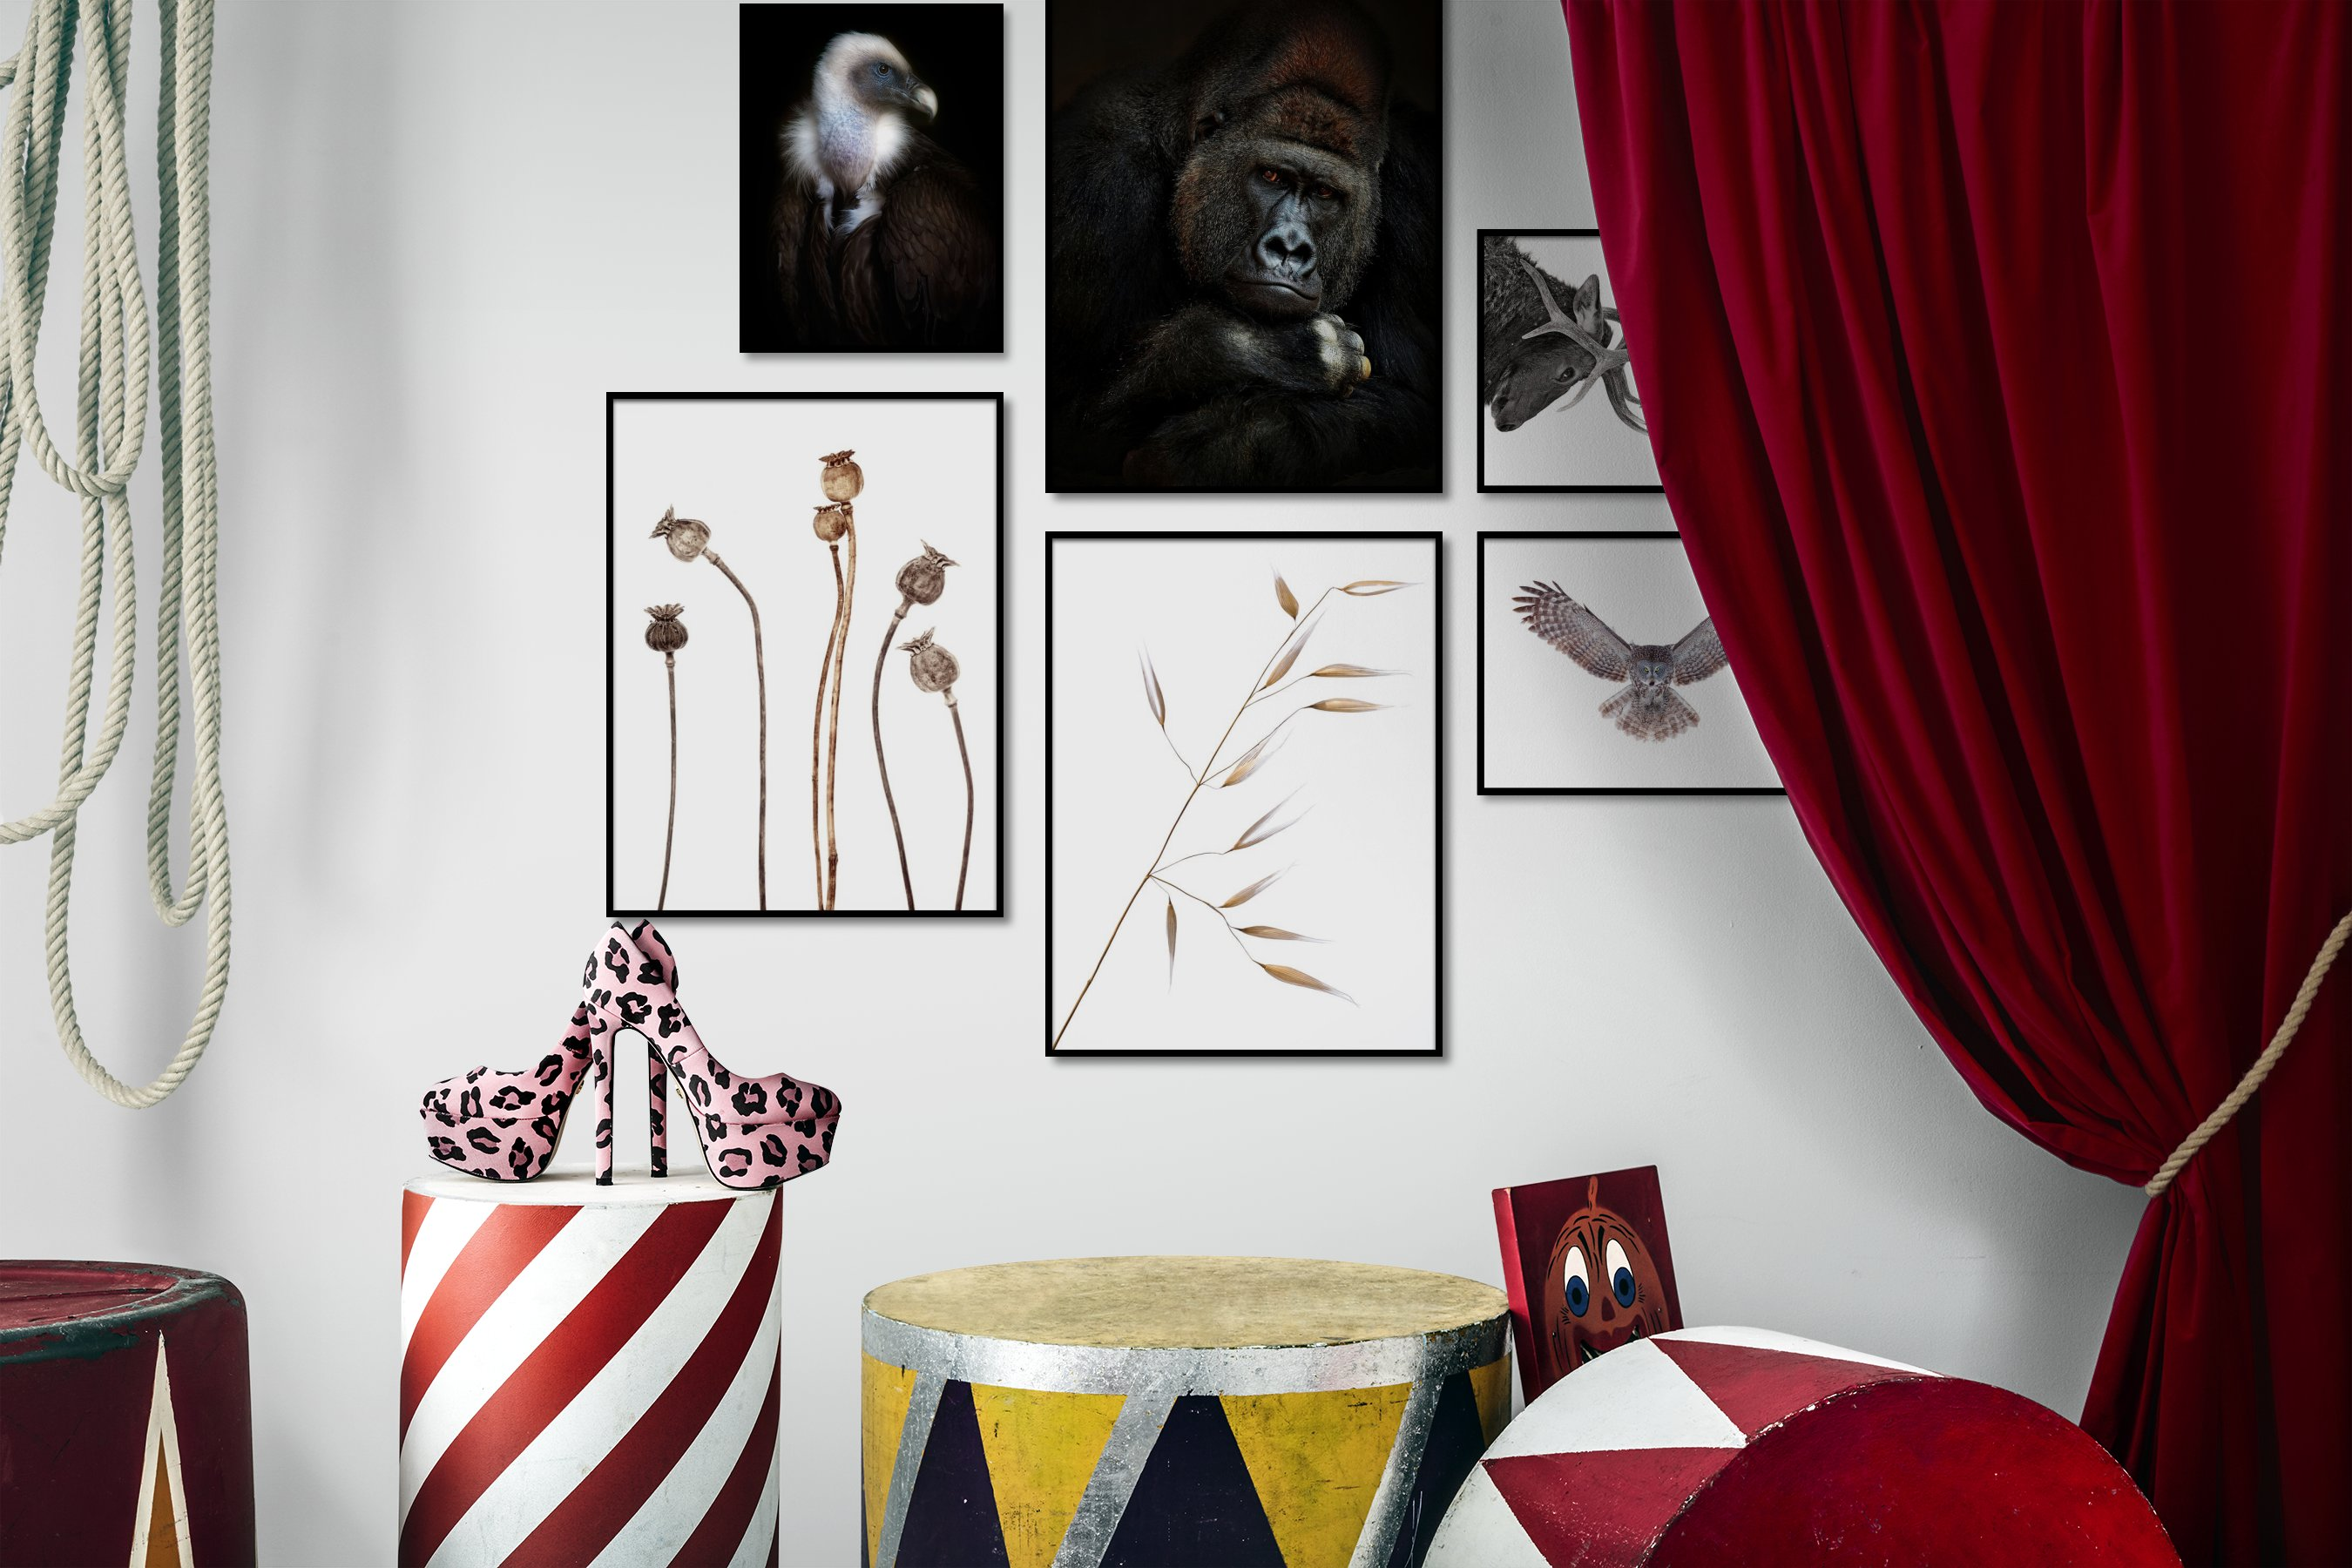 Gallery wall idea with six framed pictures arranged on a wall depicting Dark Tones, Animals, Bright Tones, For the Moderate, Flowers & Plants, For the Minimalist, and Mindfulness